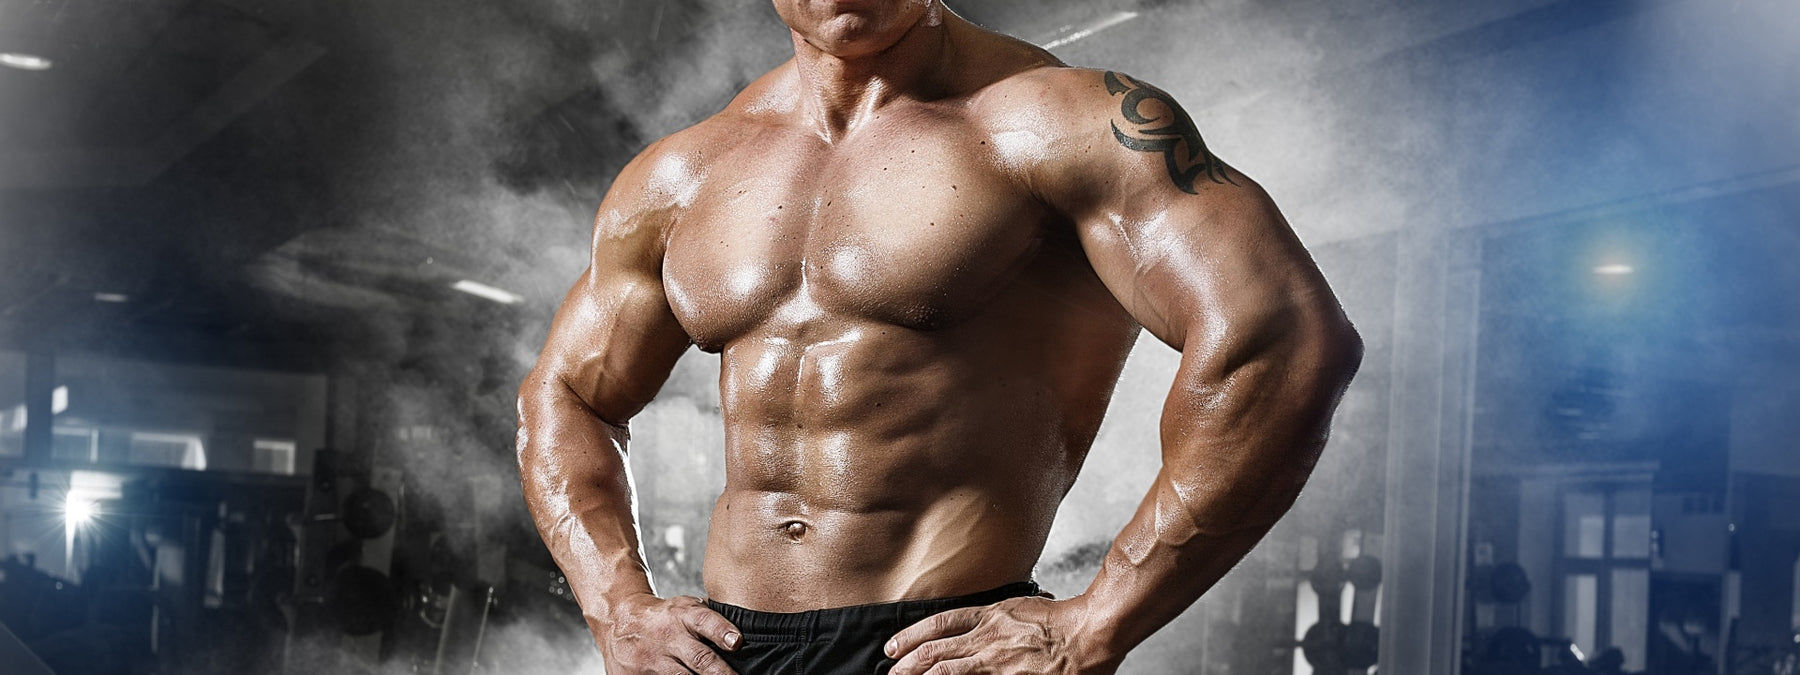 Muscle and Strength - The Ultimate Workout Routine to Build Both